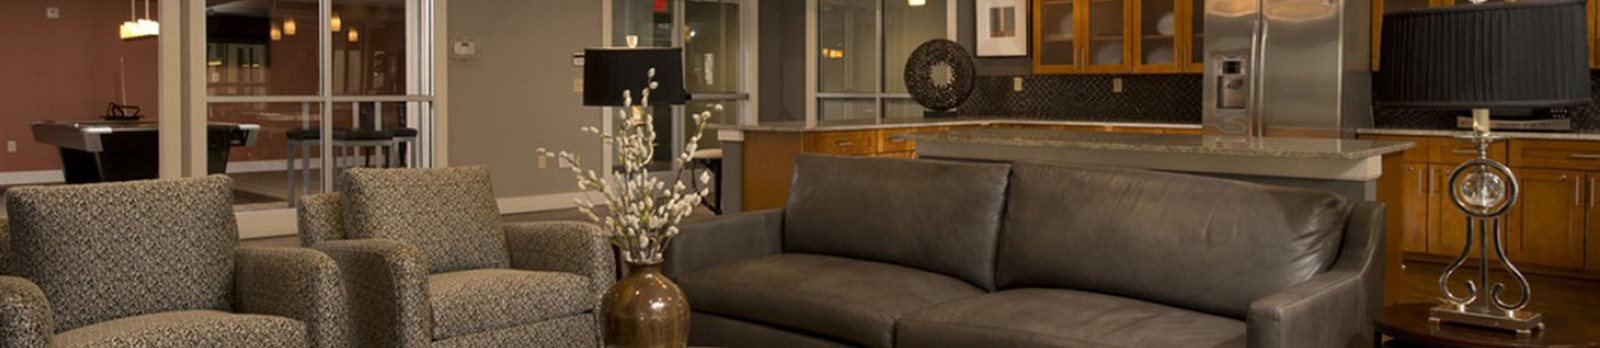 Modern Furnishings at Alexander at Patroon Creek, Albany, New York